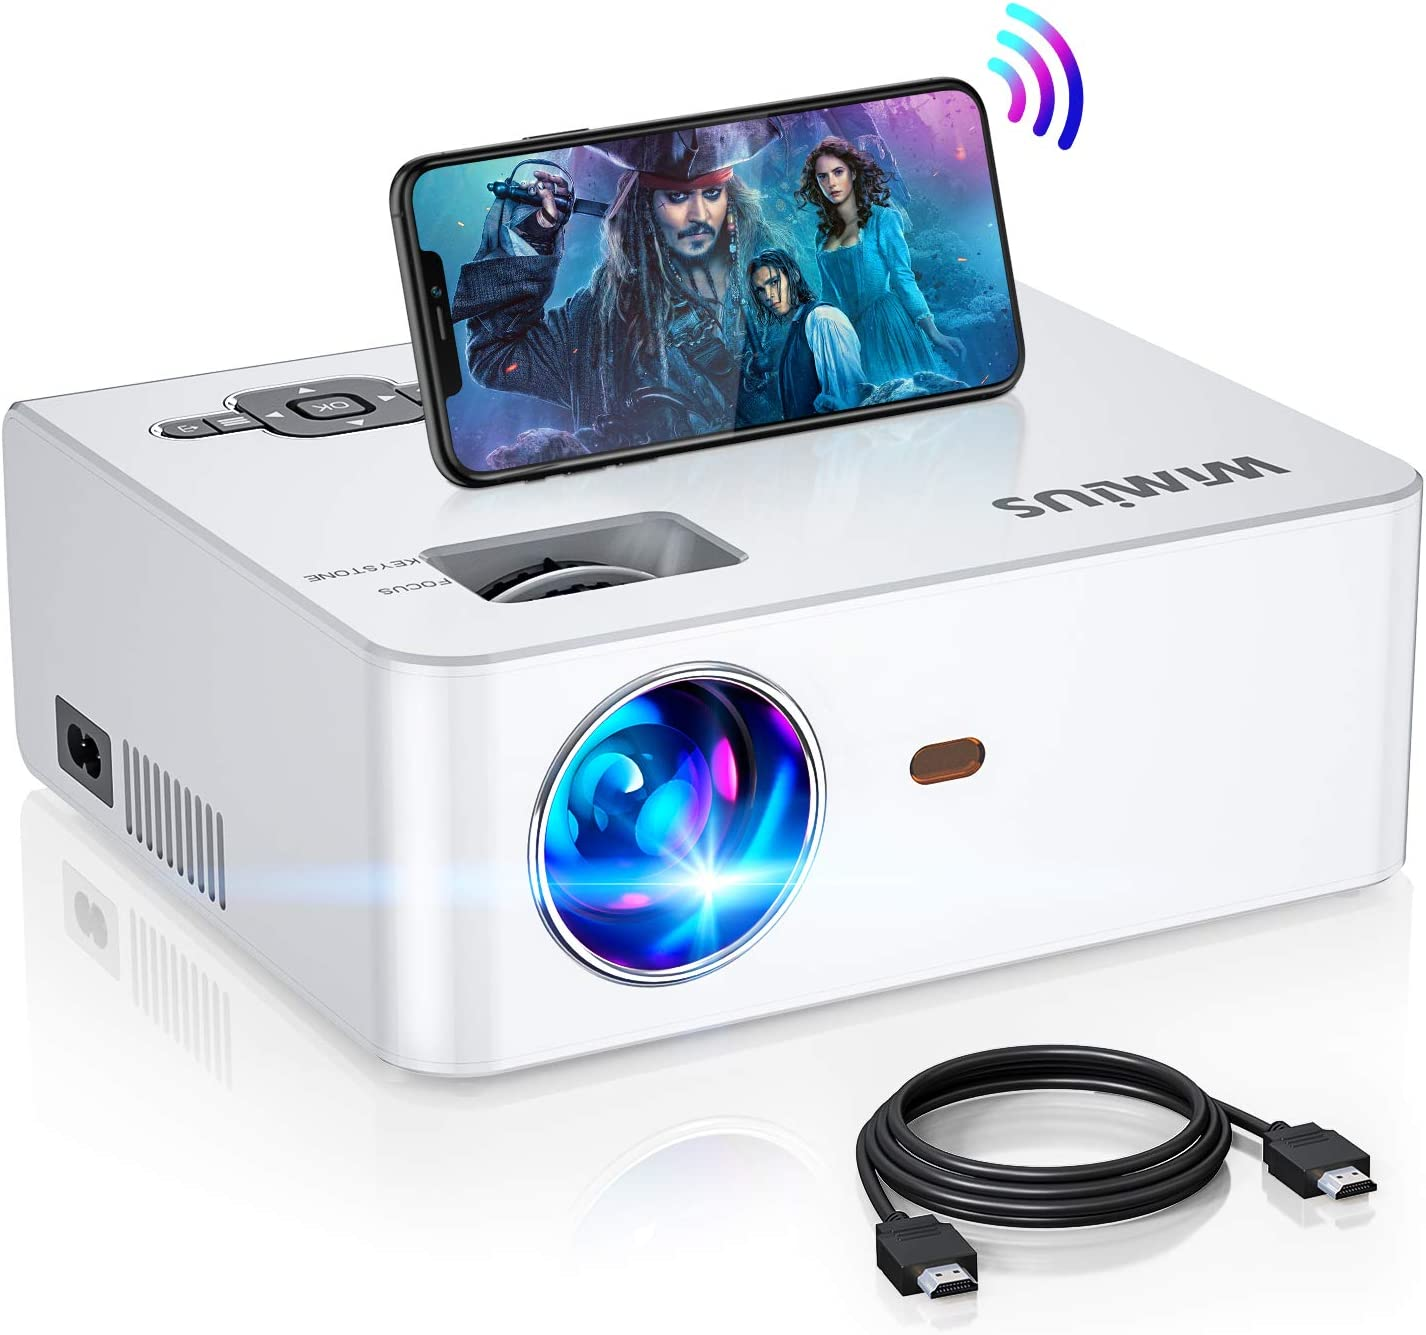 """WiFi Mini Projector 5500Lux HD, Built-in 5W Speaker, 2X Louder, New WiMiUS S2 Home & Outdoor Movie Projector Support 1920 x 1080P 200"""" Screen, Compatible w/ Fire TV Stick, PS4, Laptop, iPhone"""